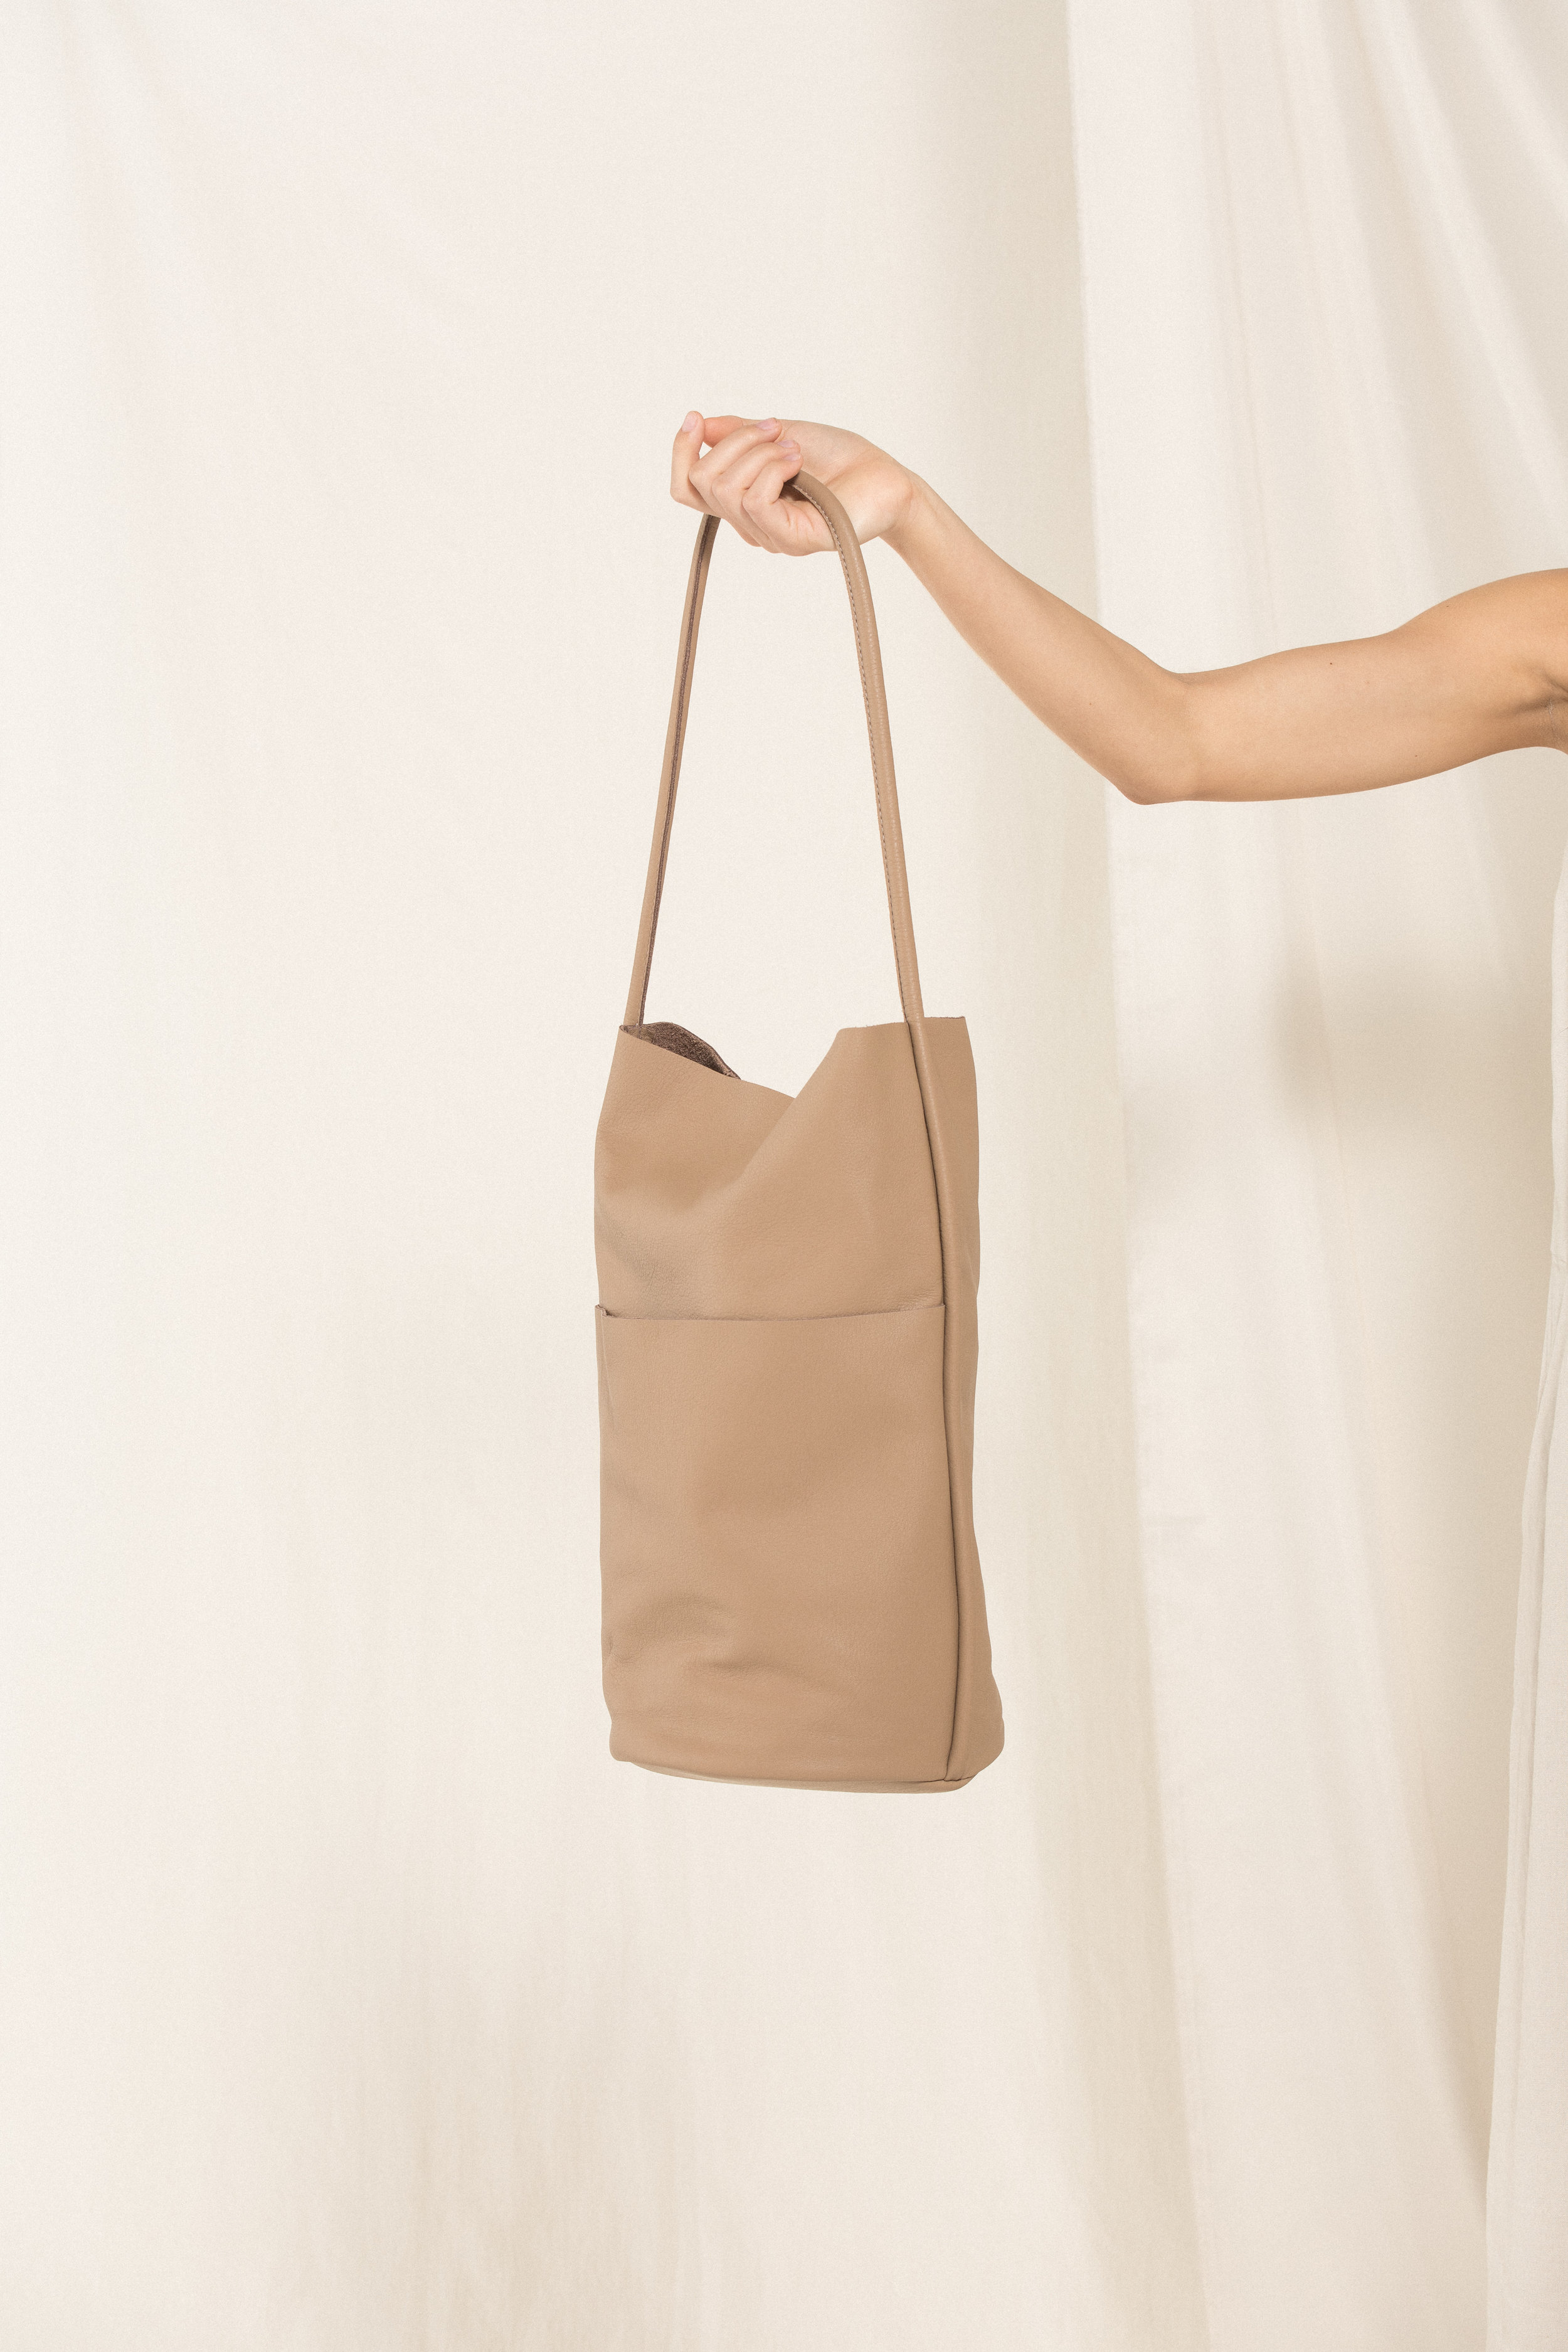 Buoy Bag - Dust / Crop Pantsuit - Khaki